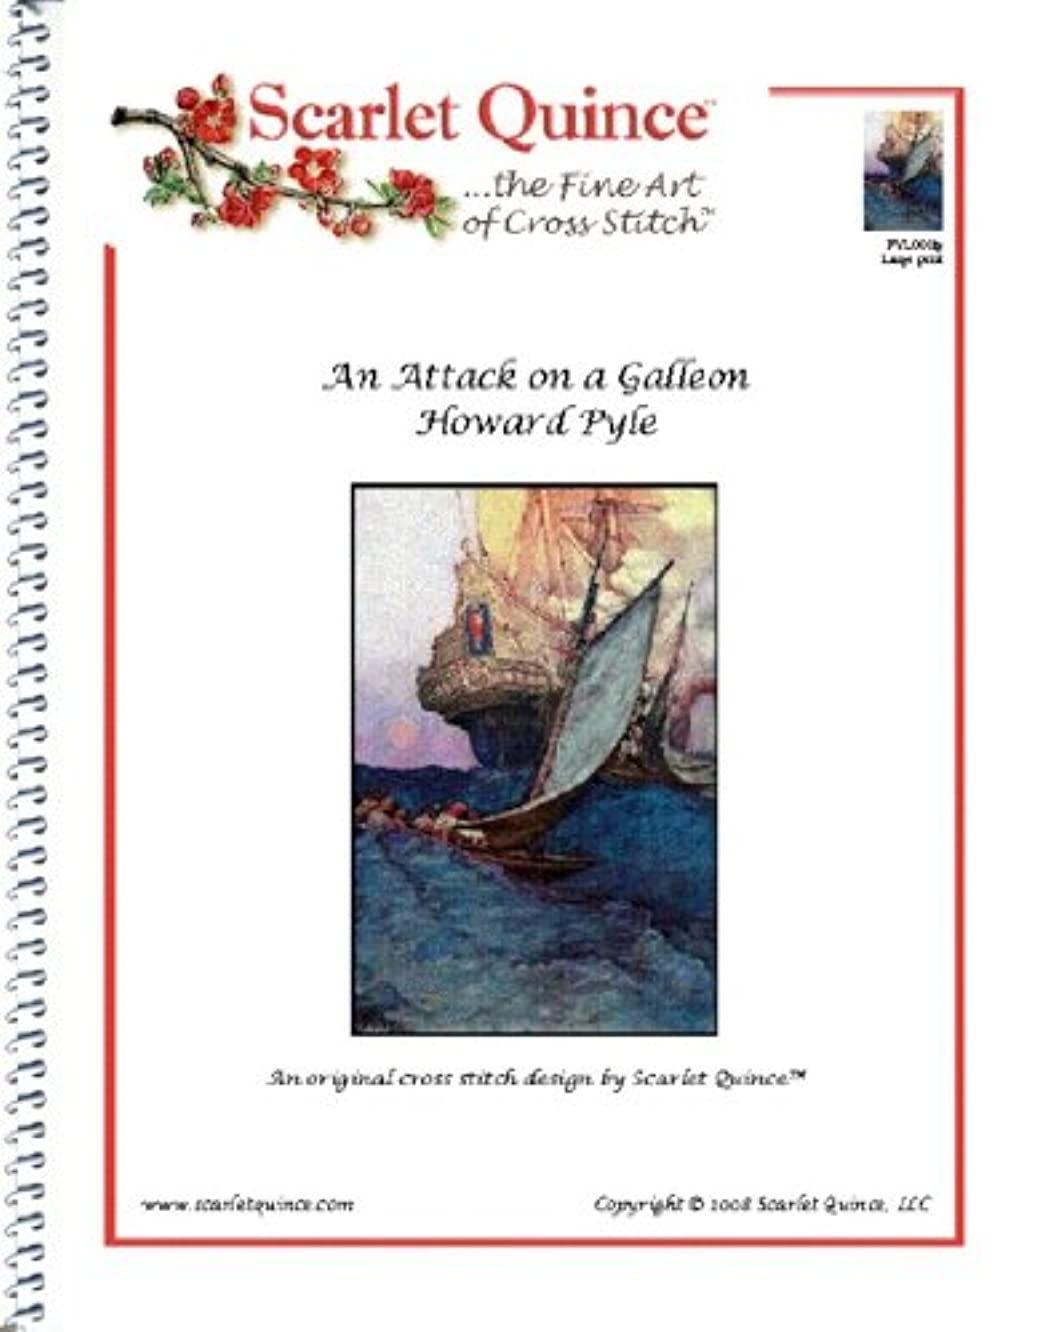 Scarlet Quince PYL001lg An Attack on a Galleon by Howard Pyle Counted Cross Stitch Chart, Large Size Symbols